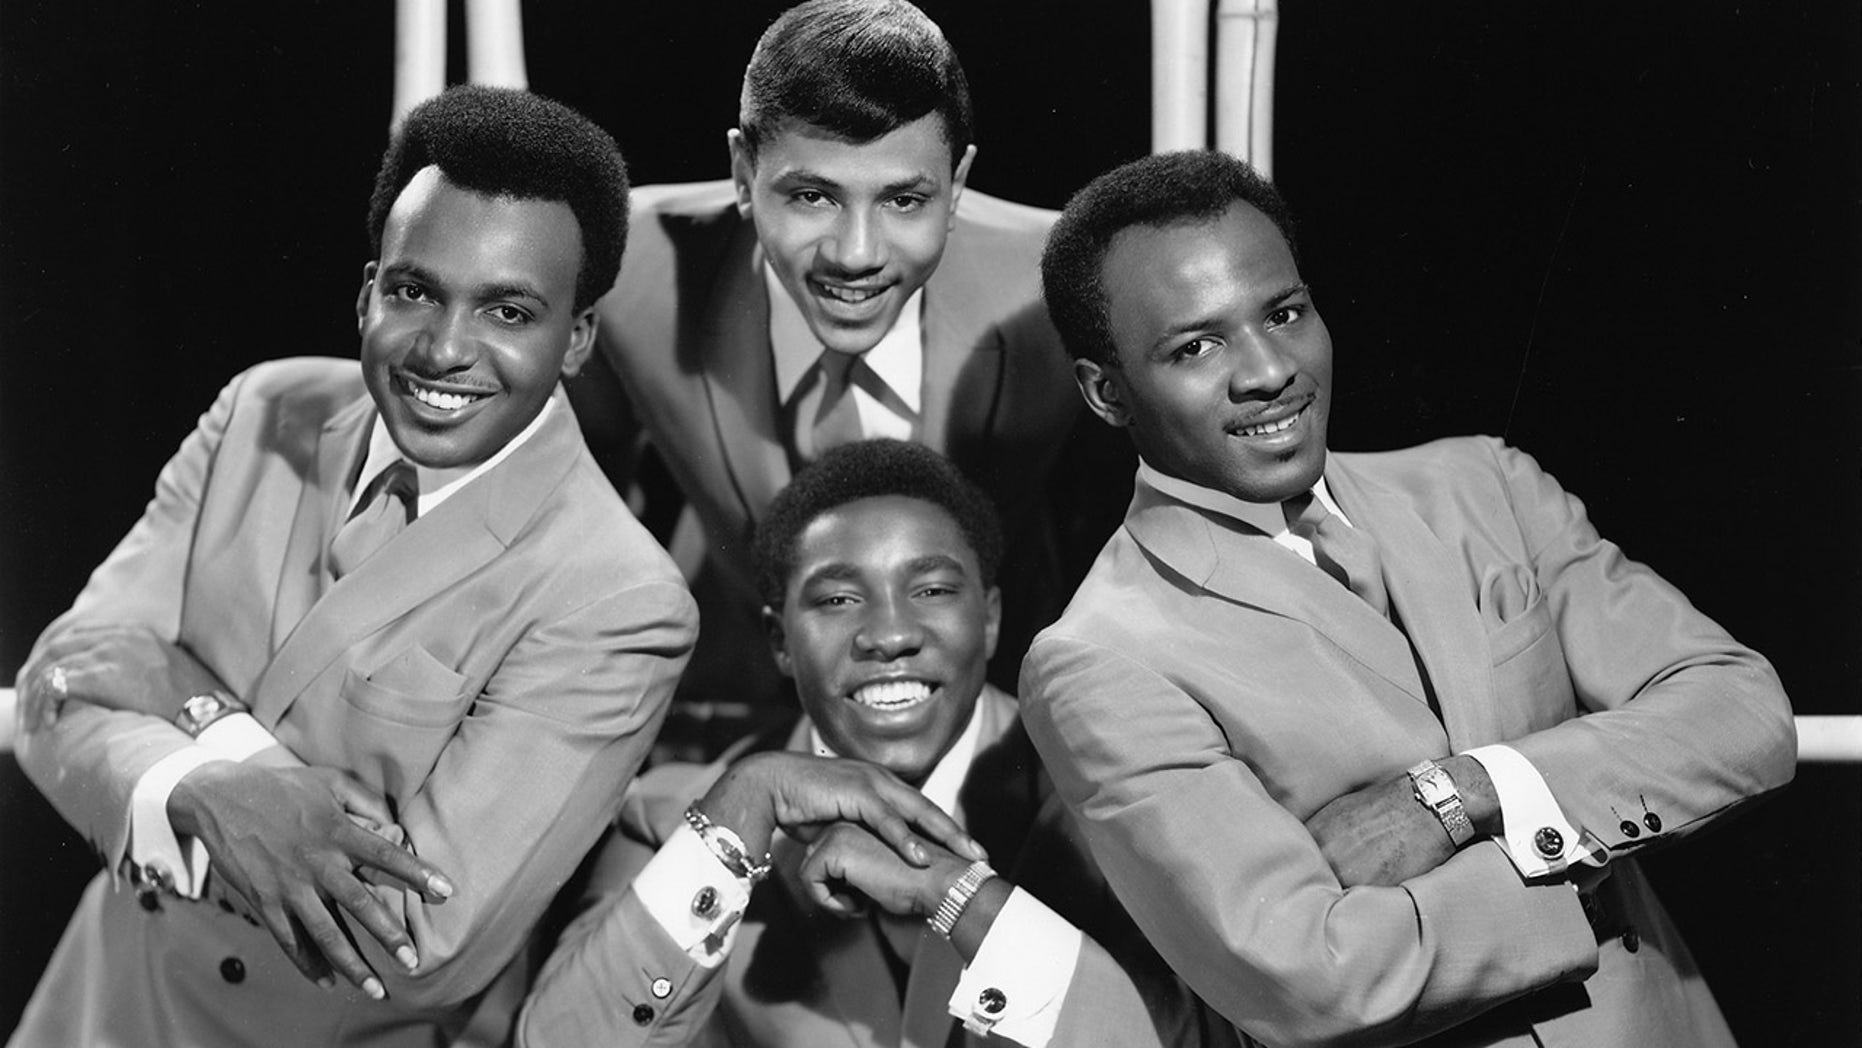 The O'Jays pose for a group portrait in 1967.